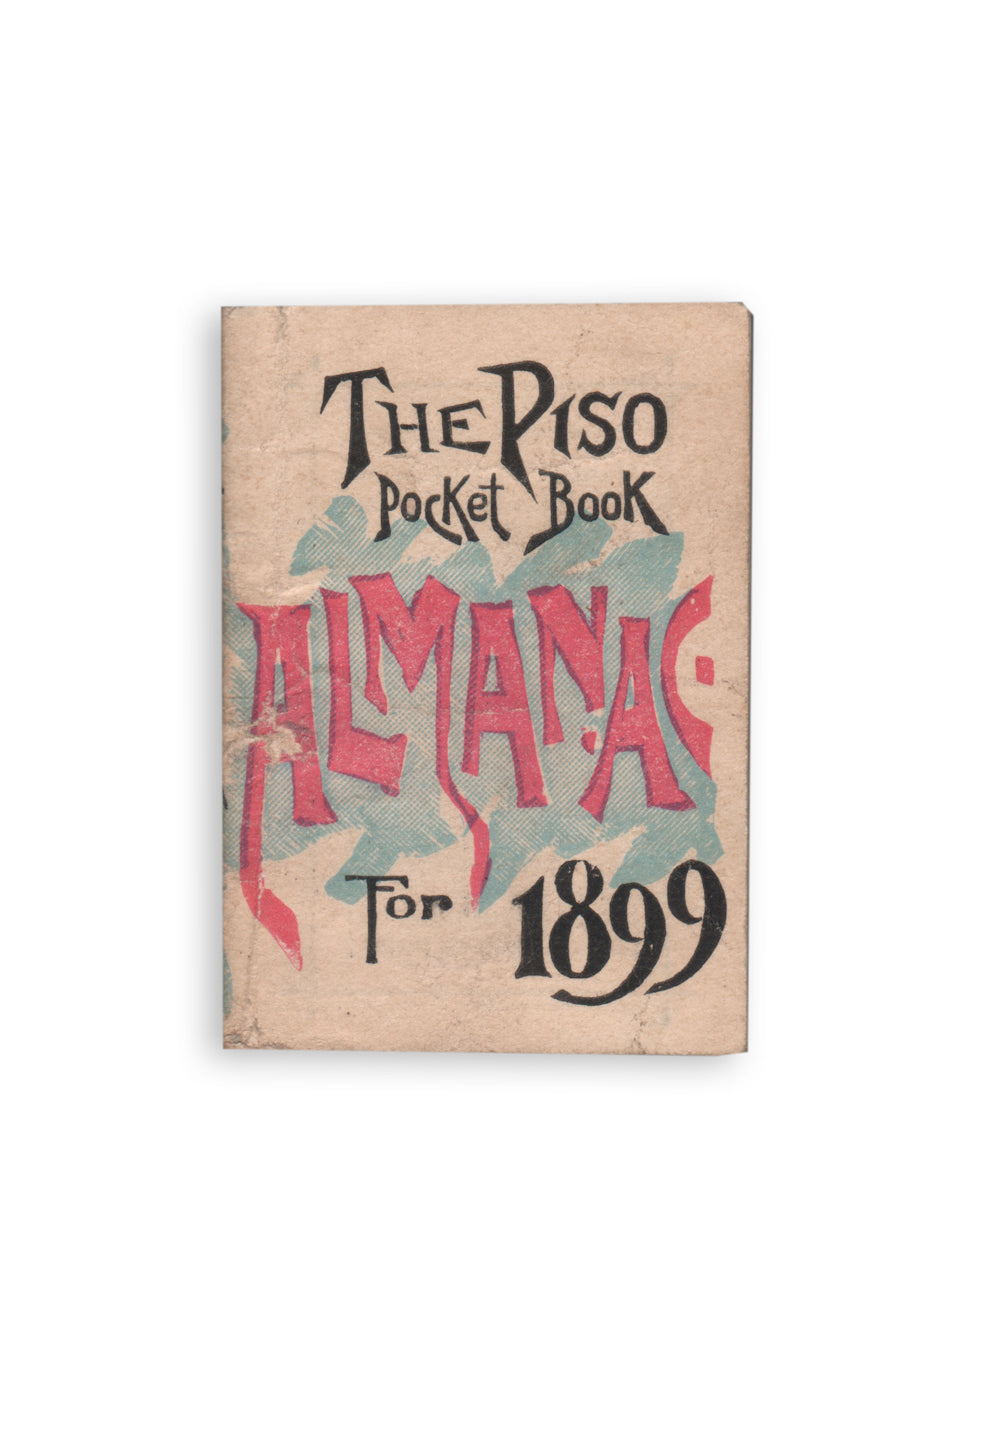 Piso Pocket Book Almanac for 1899